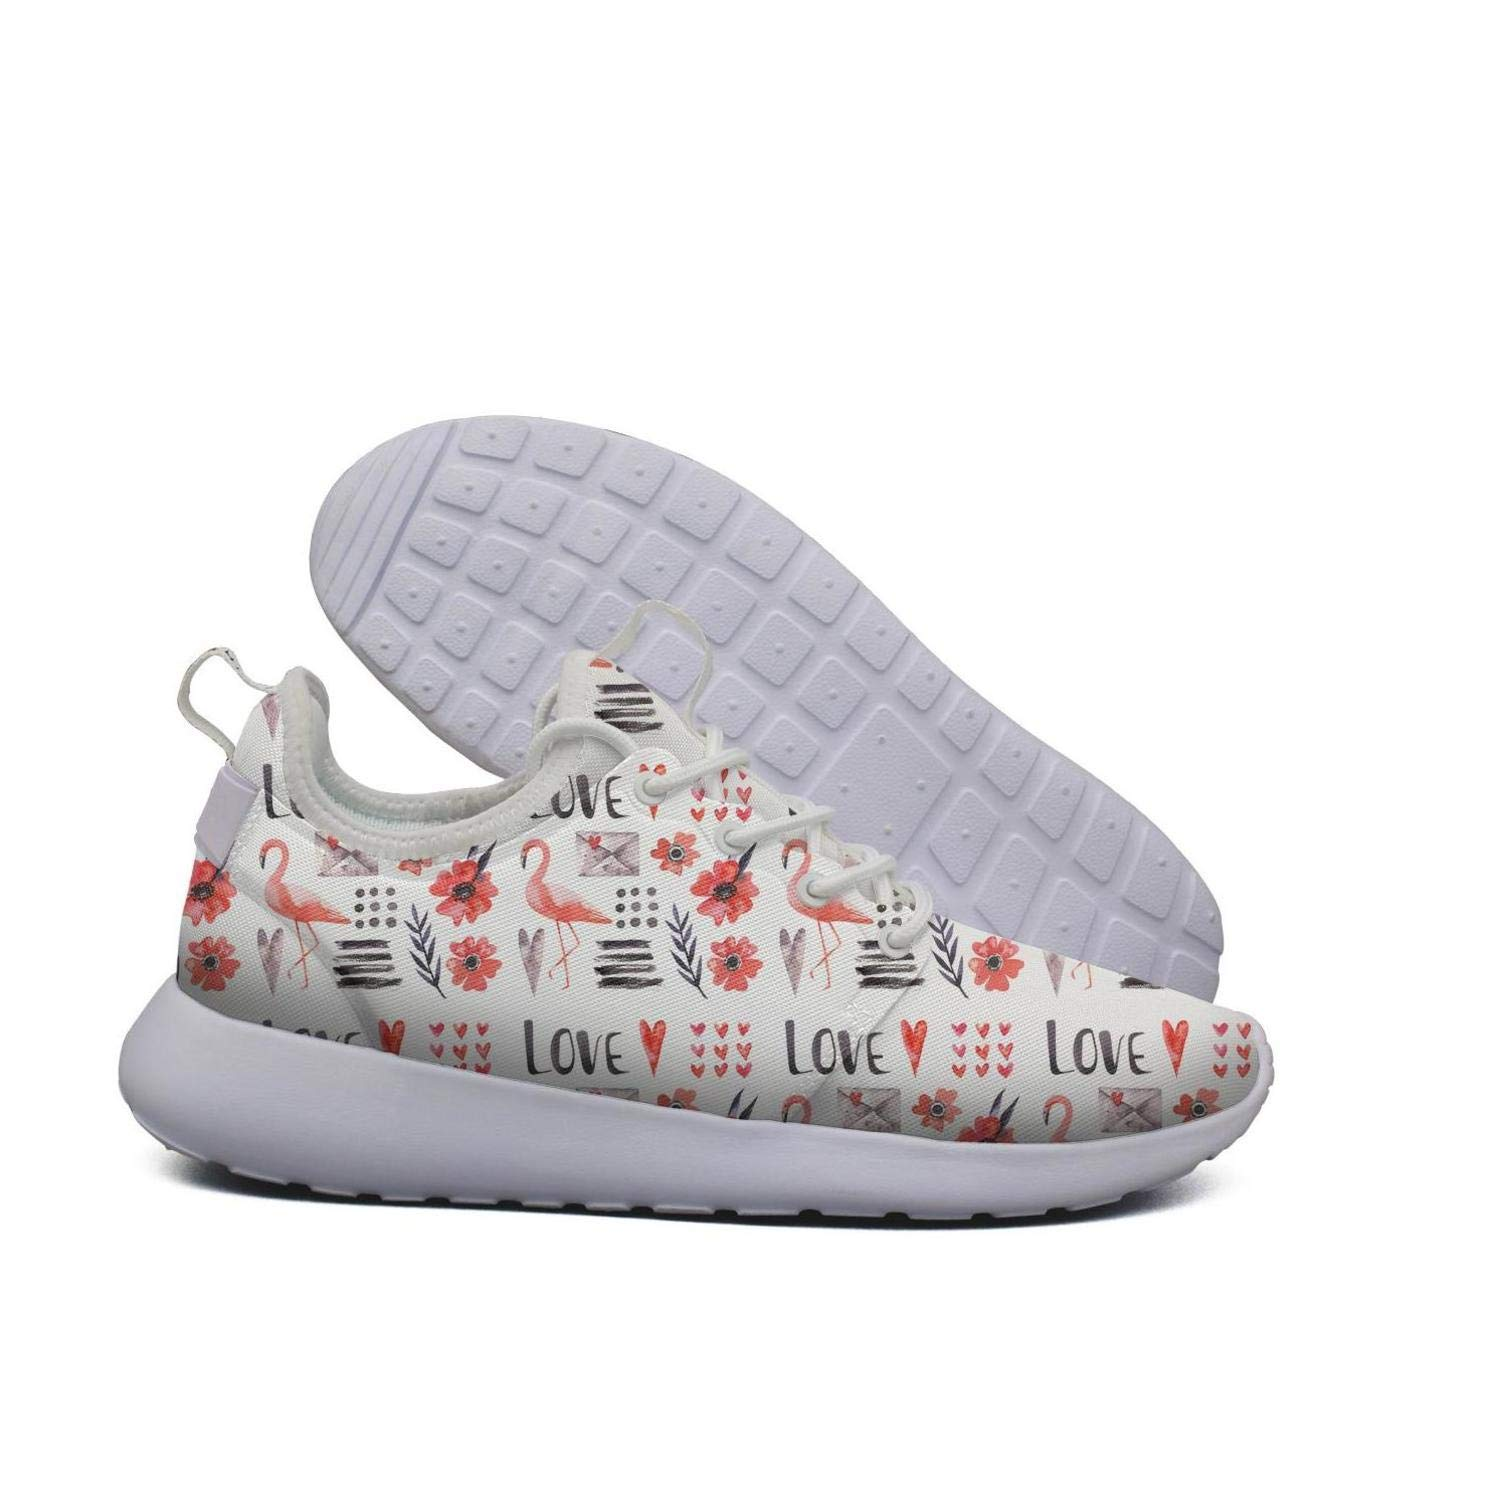 61850624f60059 Amazon.com  Gjsonmv Women s Give me Pizza Love Skulls Star Sky mesh Fashion  Shoes lightweighttrack Sneakers  Sports   Outdoors